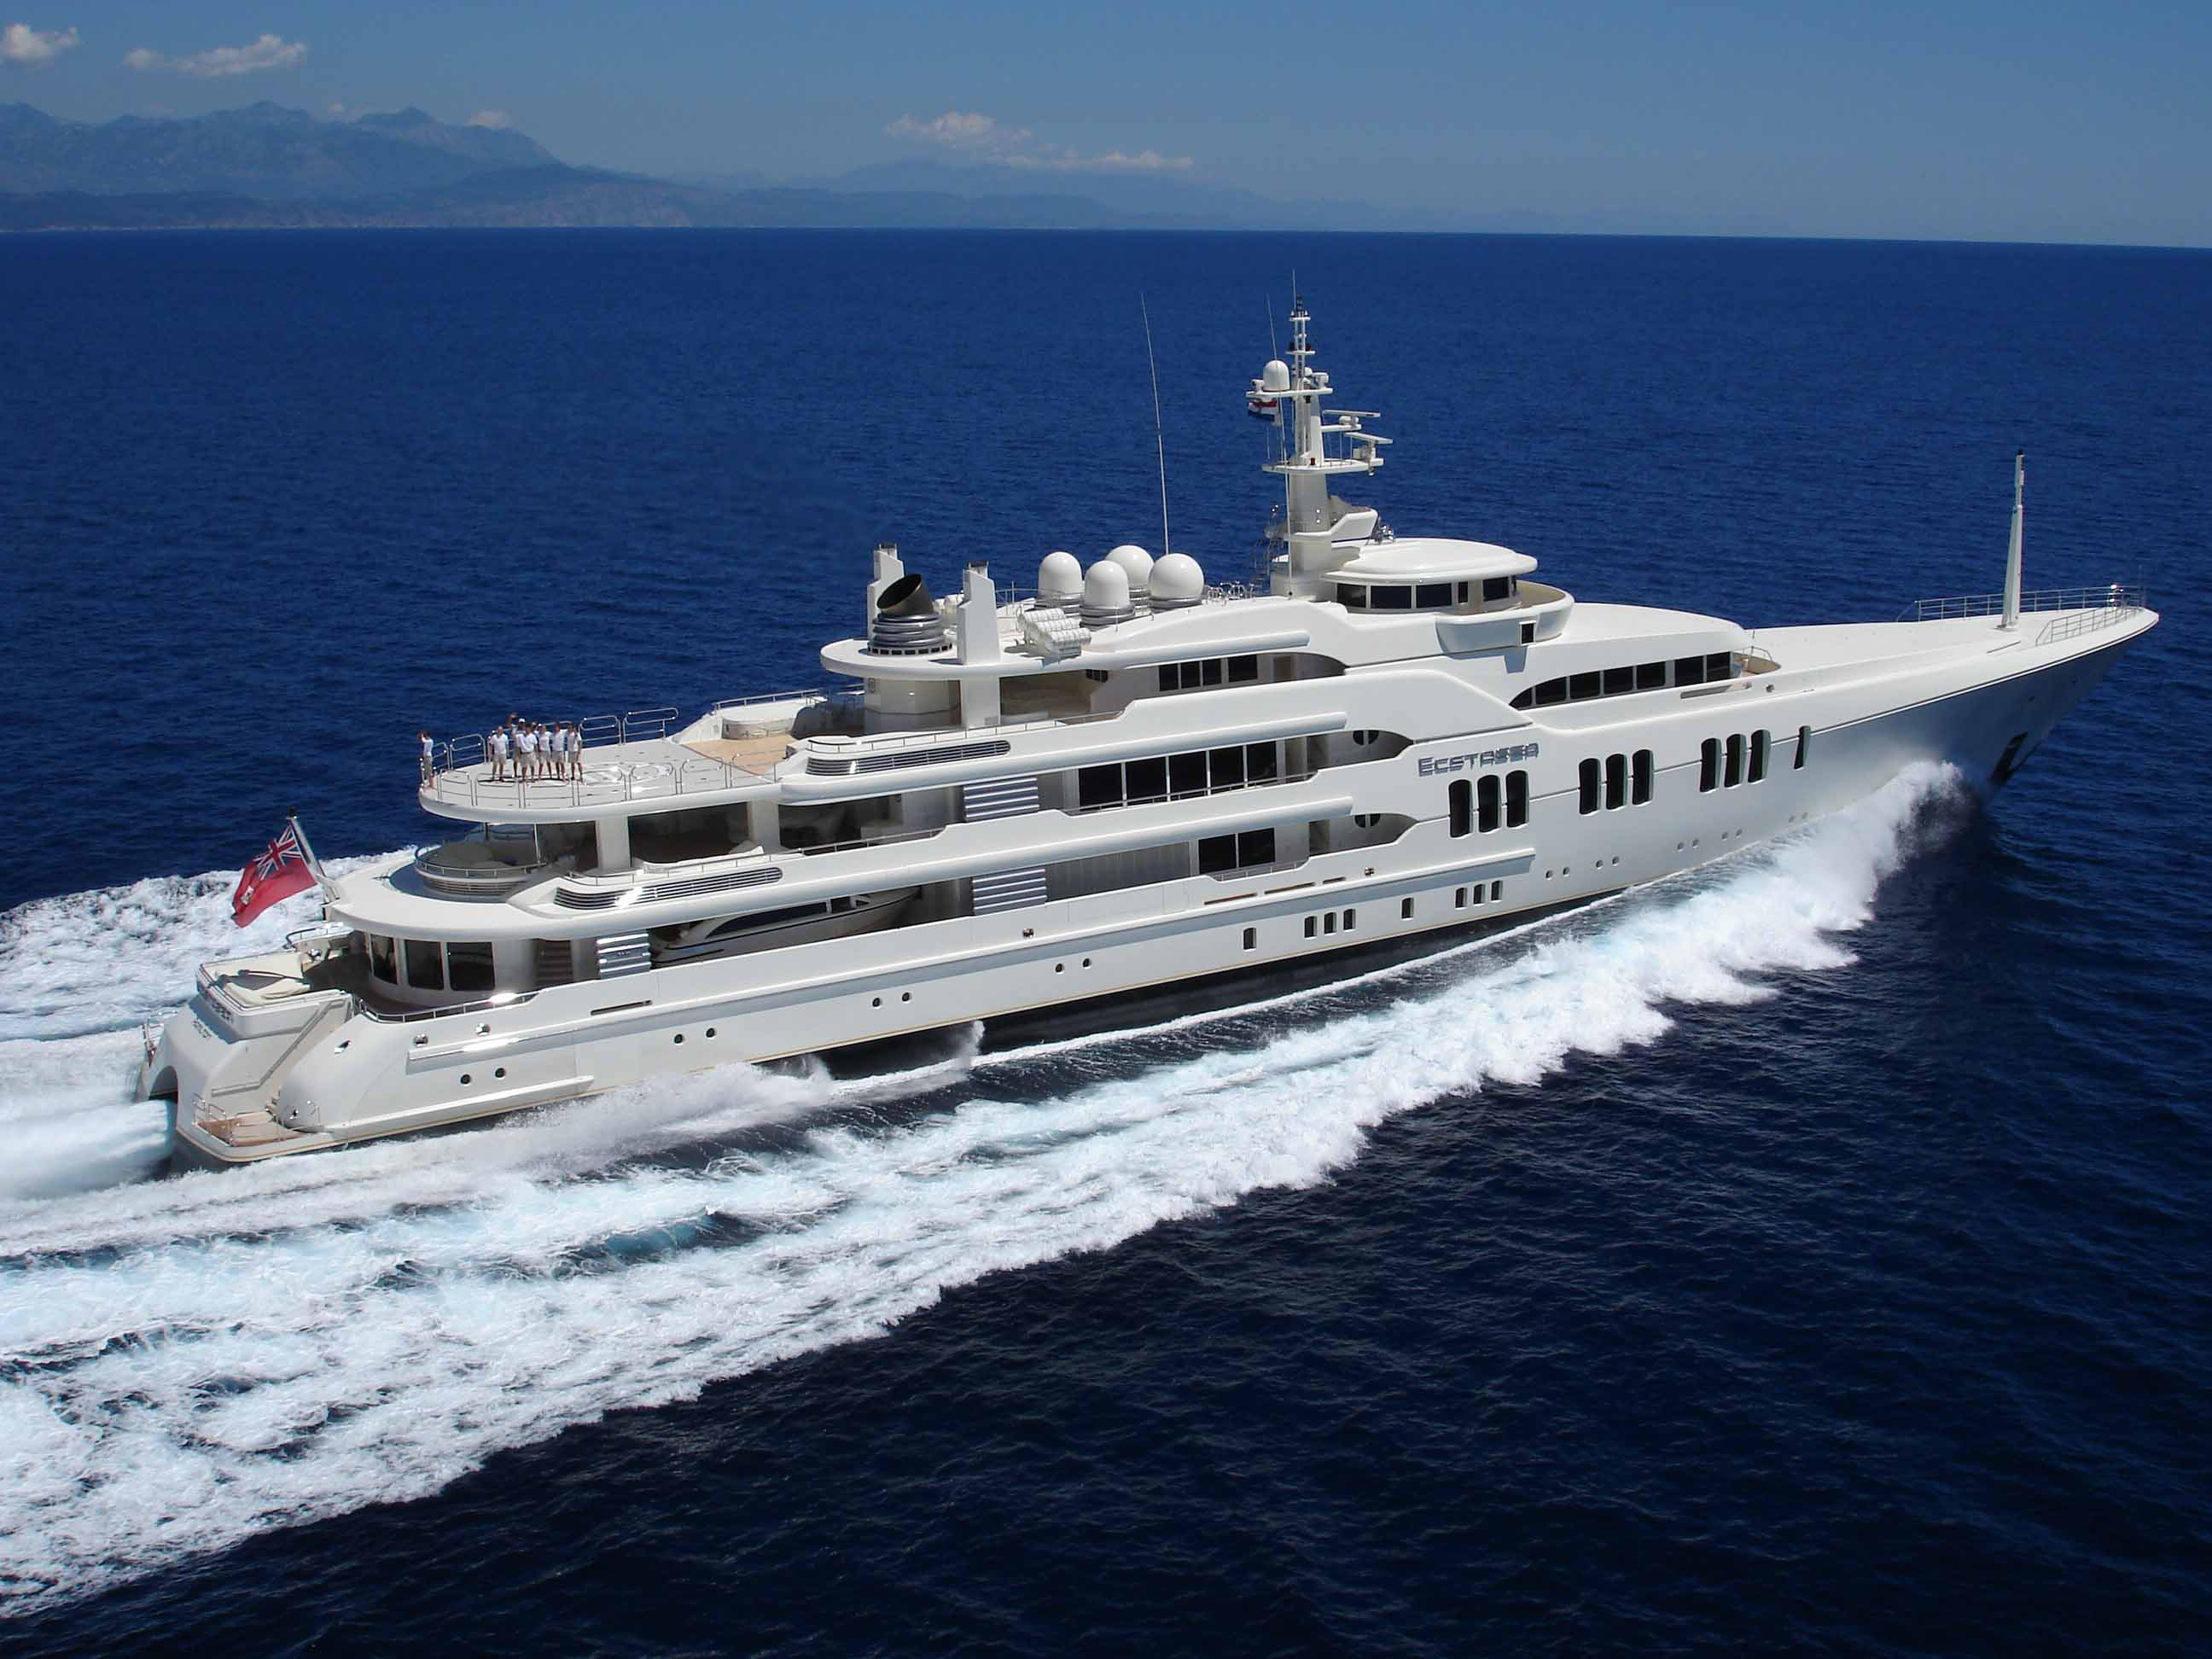 Top 10 Most Beautiful And Expensive Yachts In The World